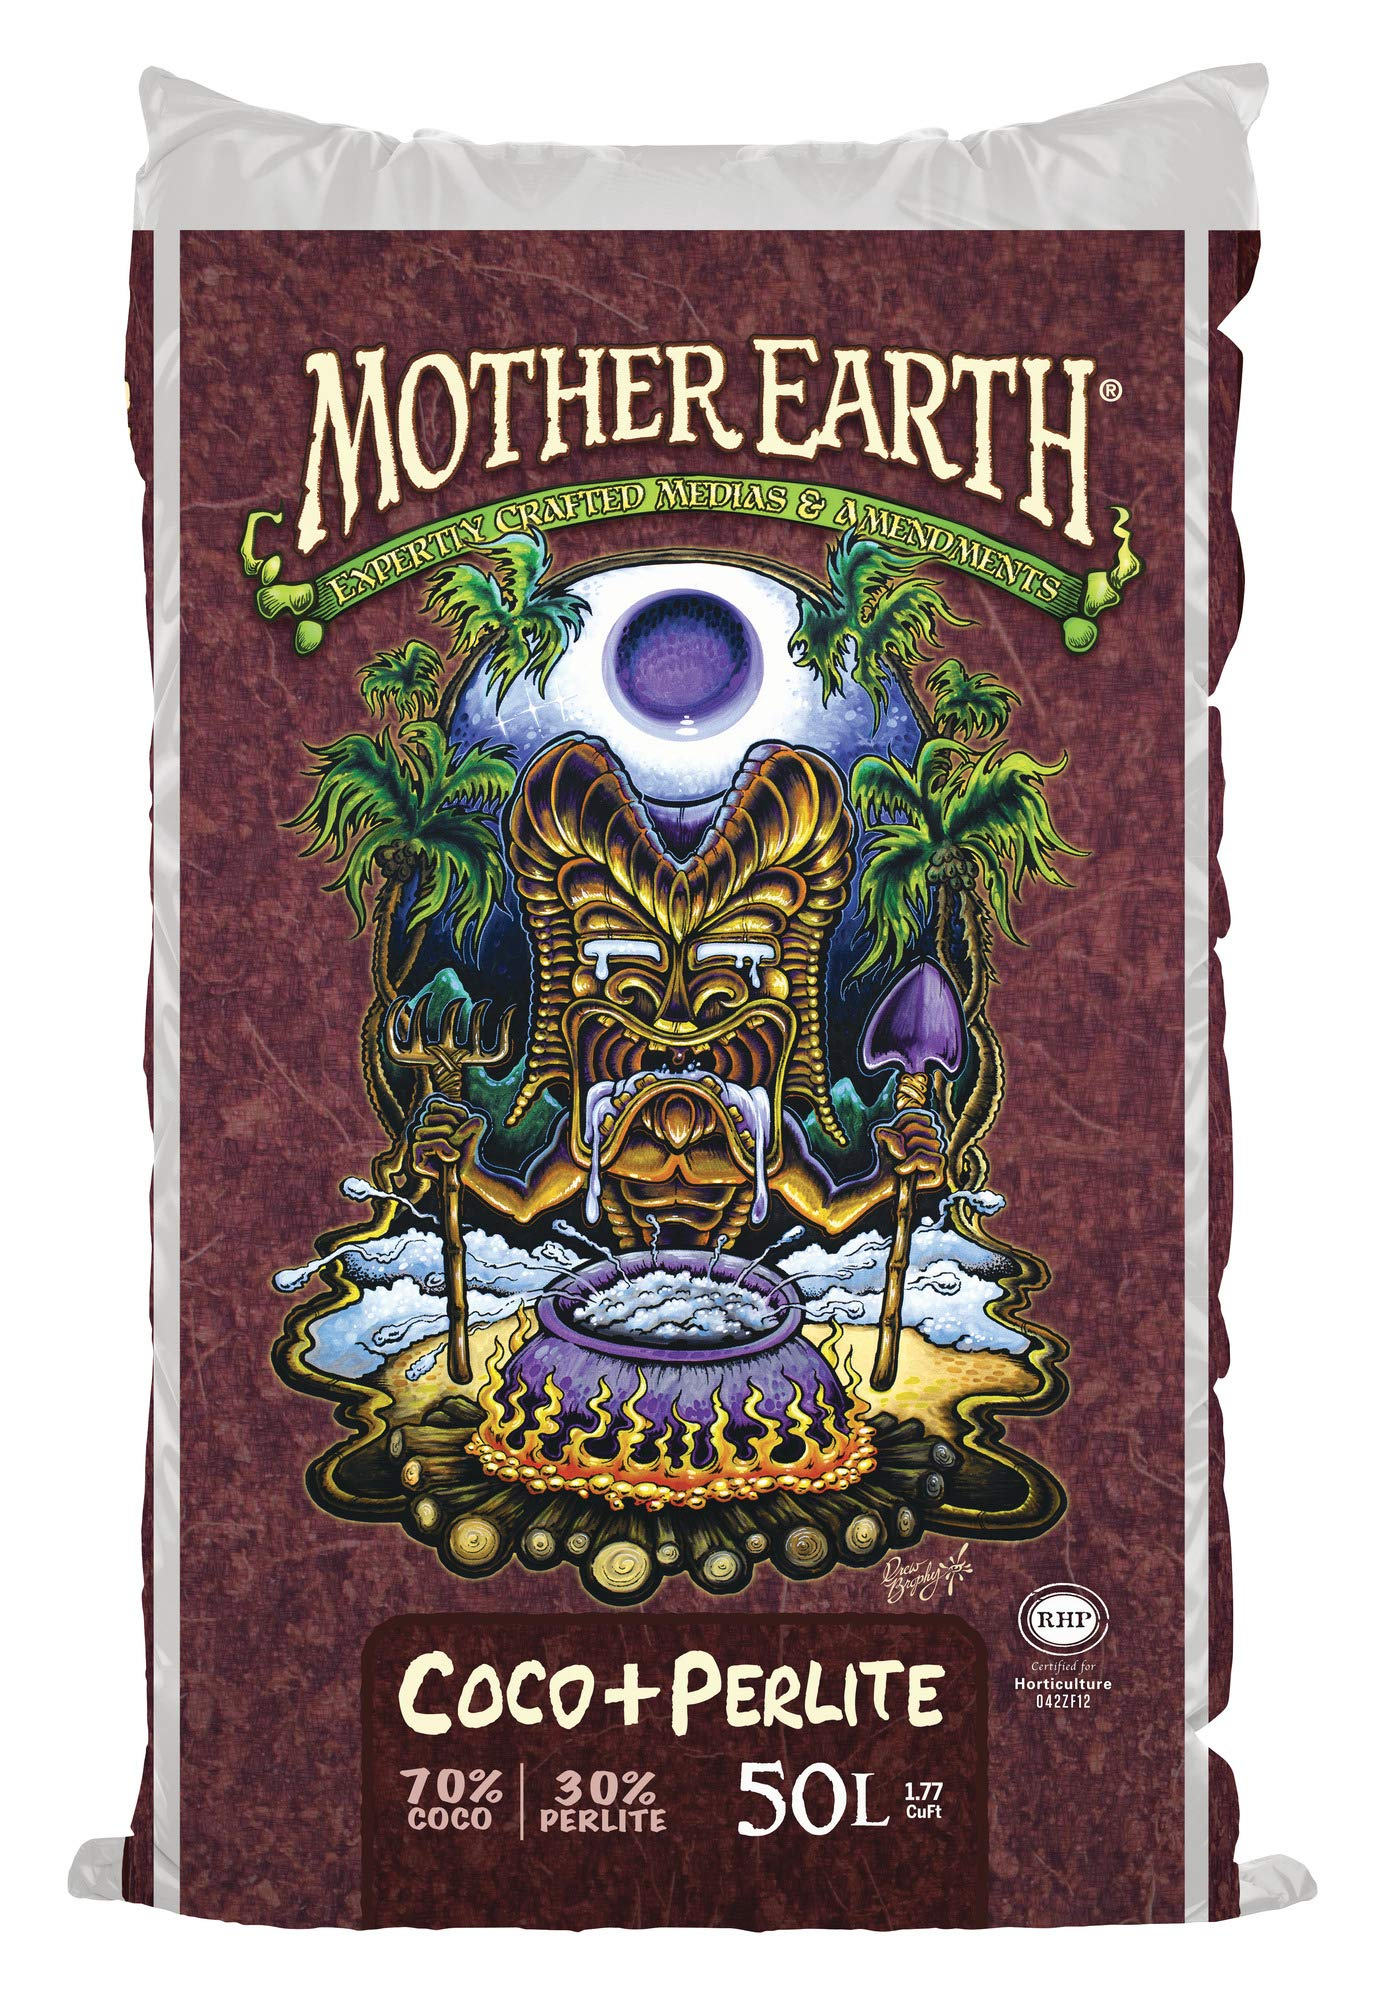 MOTHER EARTH Coco Plus Perlite Mix - For Indoor and Outdoor Container Gardens, Provides Strong Aeration & Drainage, 70% Coconut Coir, Resists Compaction, 50 Liter